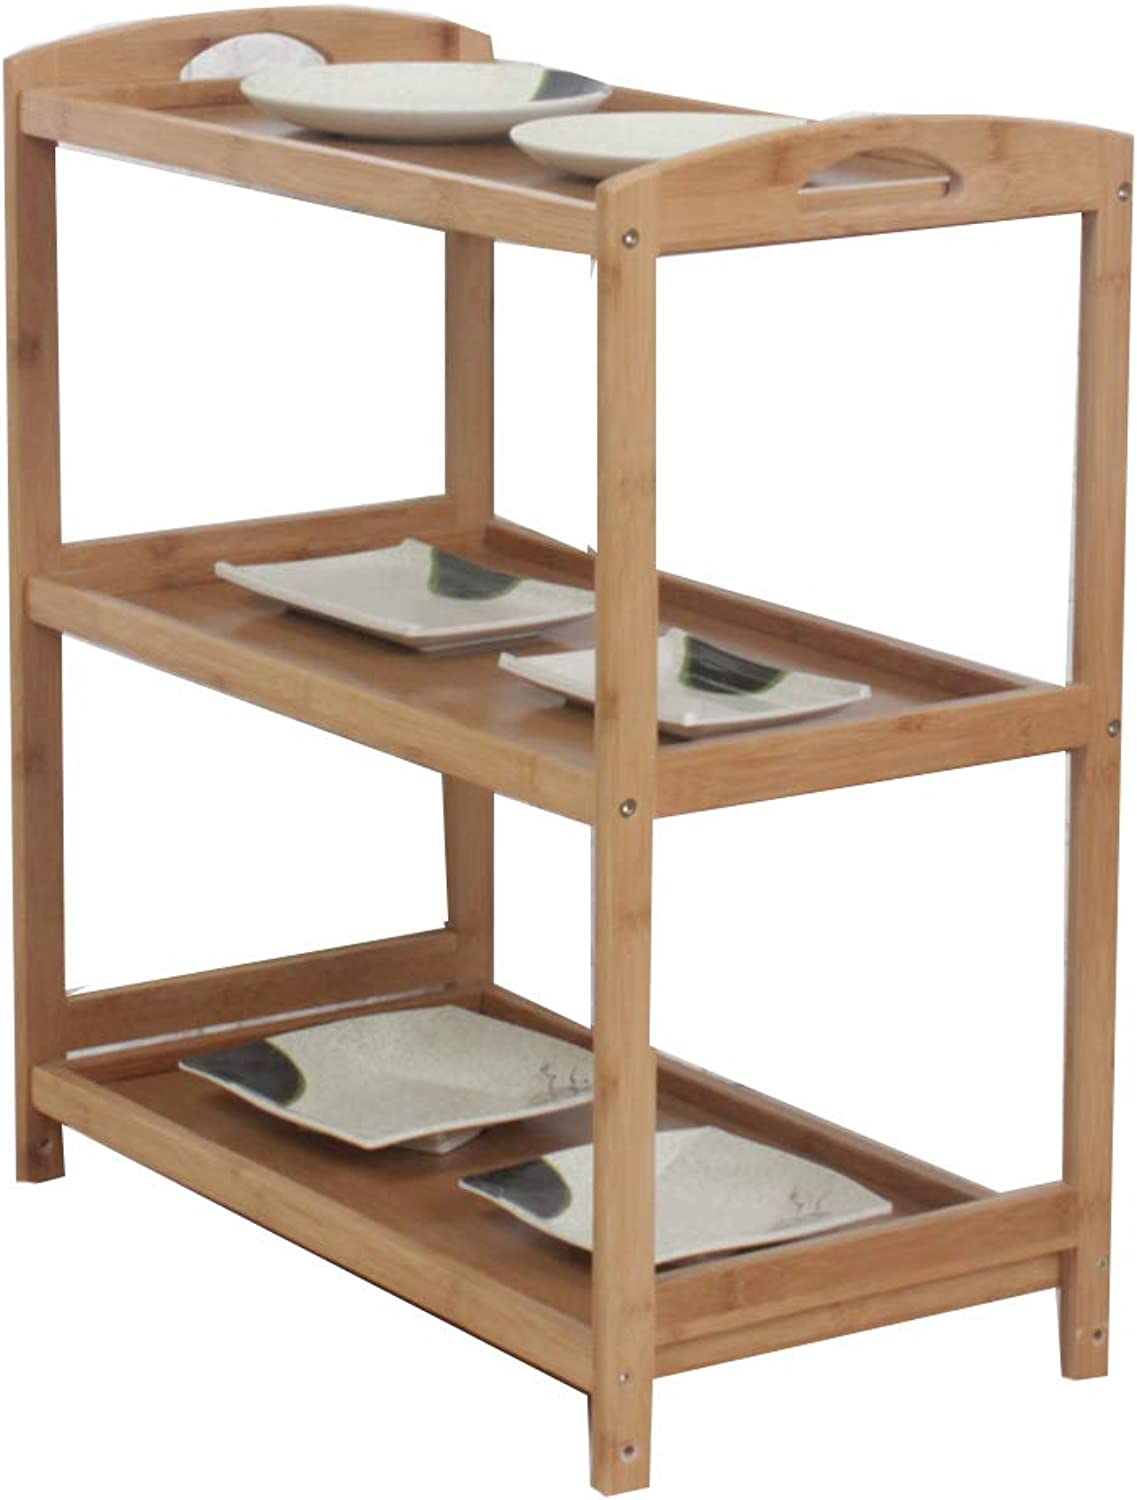 Kitchen Storage Shelf, 3-Layer Rack Restaurant Living Room Bedroom Office -A